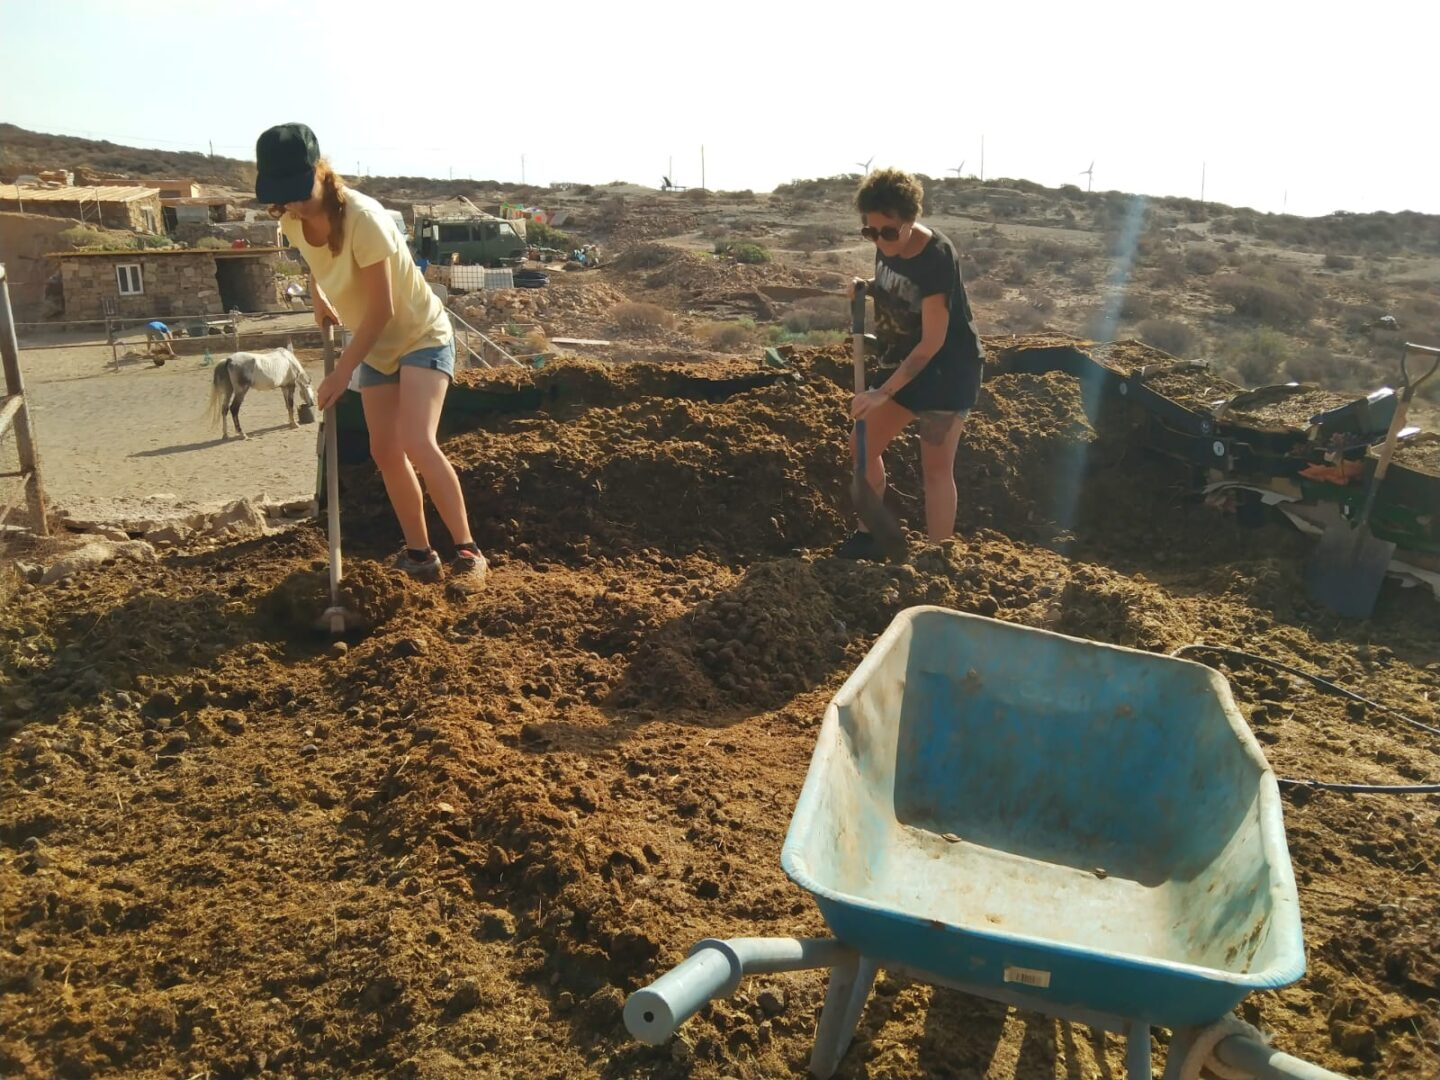 Manure composting as part of sustainable living